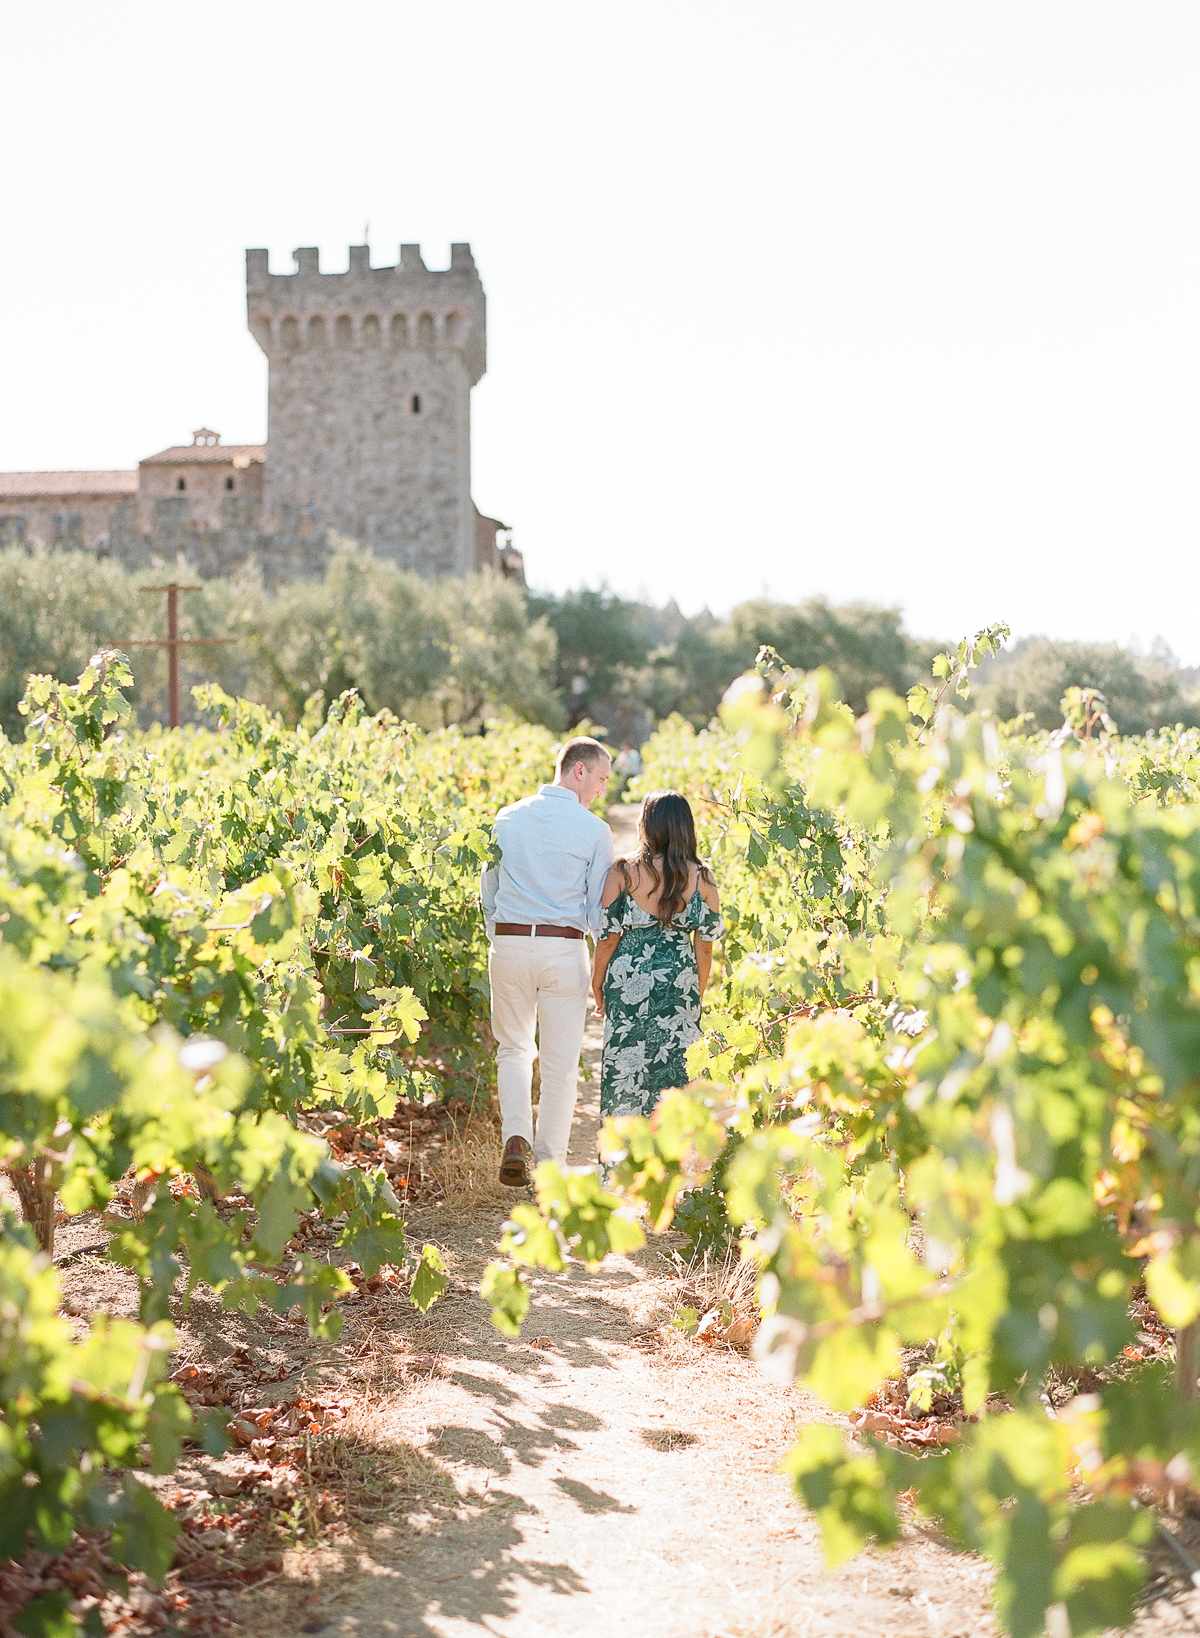 Castello di Amorosa Engagement Session in Napa The Ganeys07